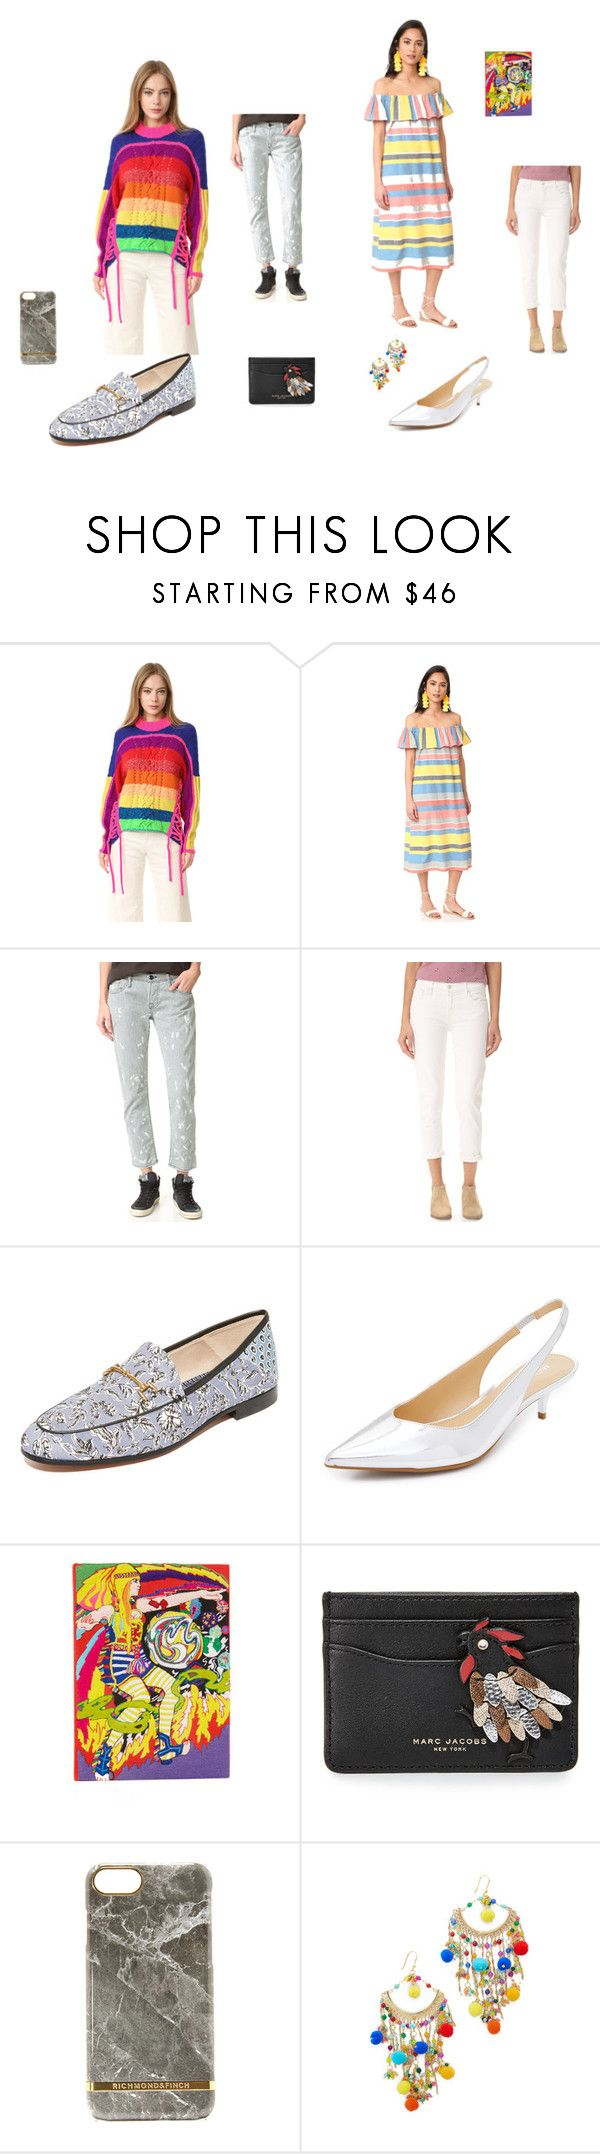 """""""It's all about fashion"""" by jamuna-kaalla ❤ liked on Polyvore featuring Spencer Vladimir, Proud Mary, NSF, Mother, Sam Edelman, MICHAEL Michael Kors, Olympia Le-Tan, Marc Jacobs and Rosantica"""